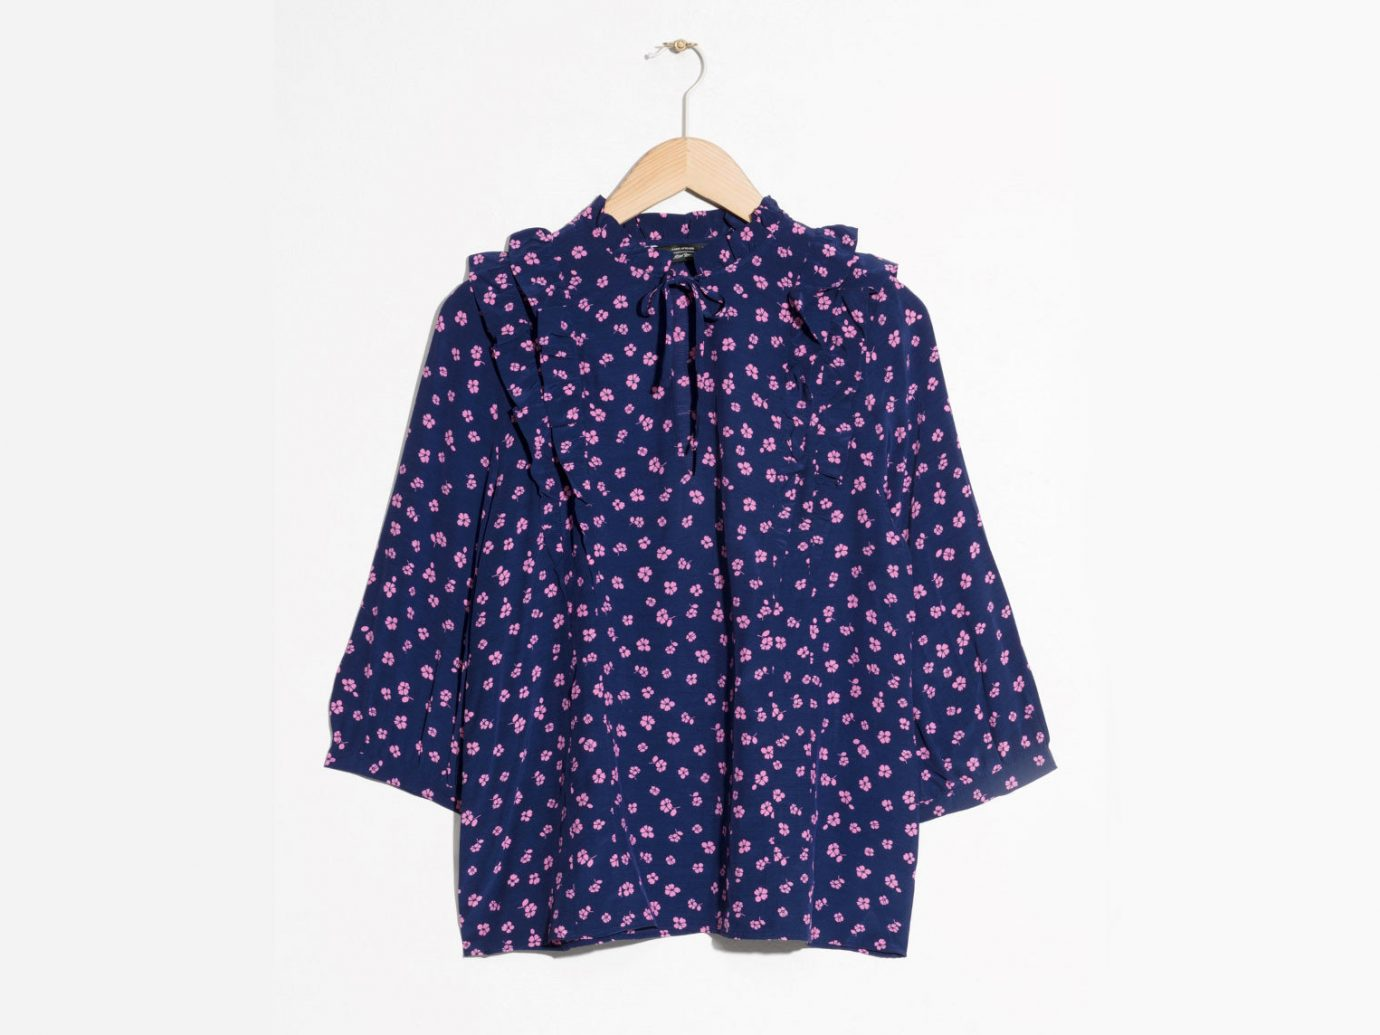 City NYC Style + Design Travel Shop clothing outerwear pattern Design blouse sleeve day dress polka dot dress colored